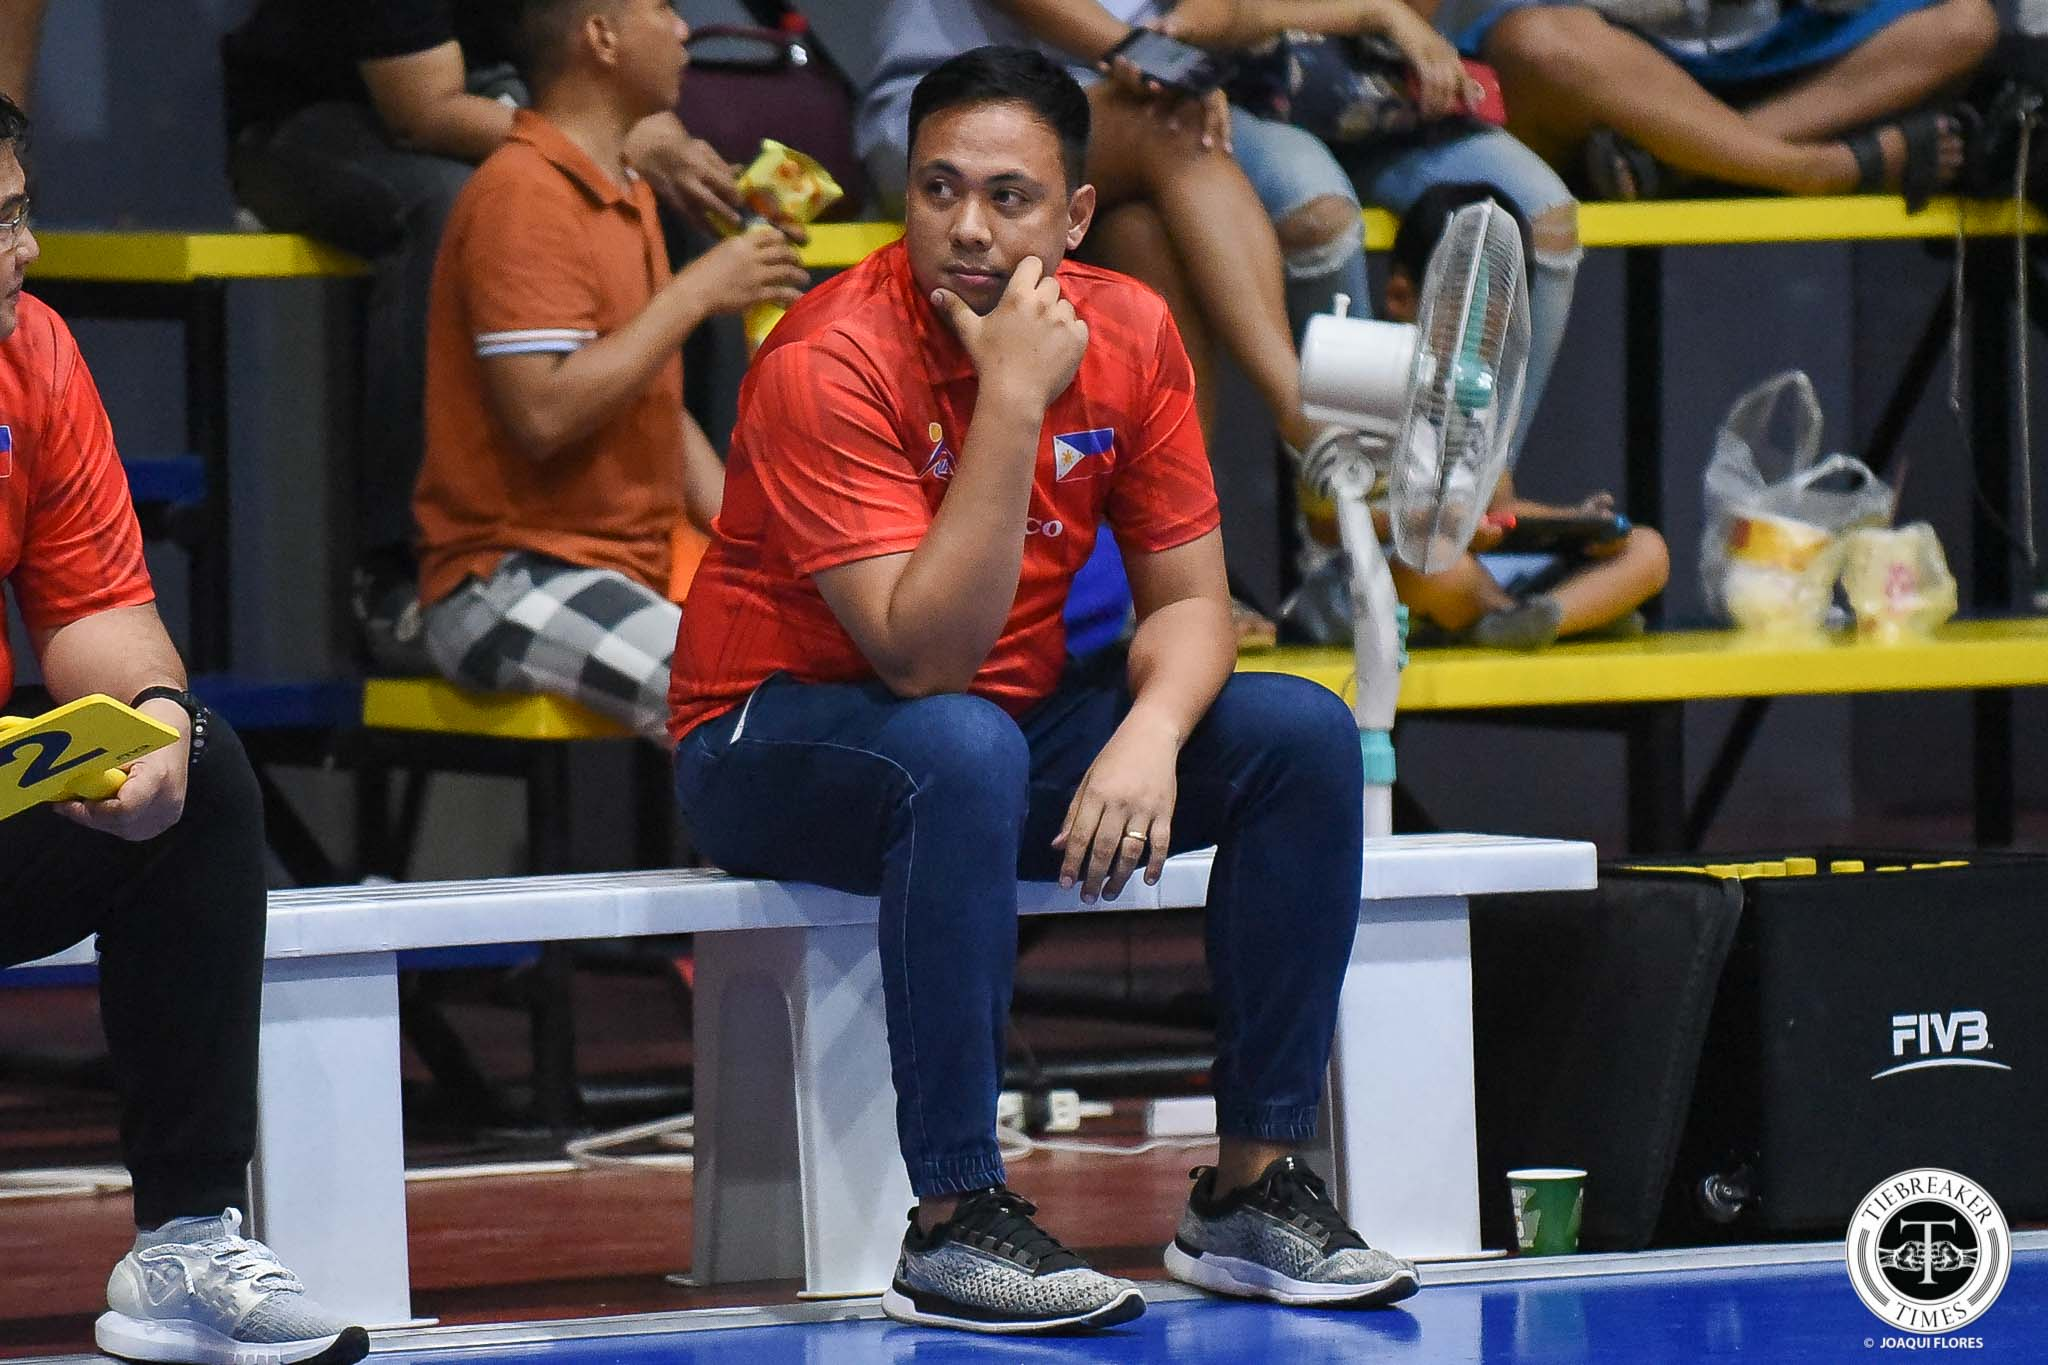 Tiebreaker Times Dante Alinsunurin plays down loss to Sta. Elena, says main goal is to find final 14 News Spikers' Turf Volleyball  Rebisco-Philippines Dante Alinsunurin 2019 Spikers Turf Season 2019 Spikers Turf Reinforced Conference